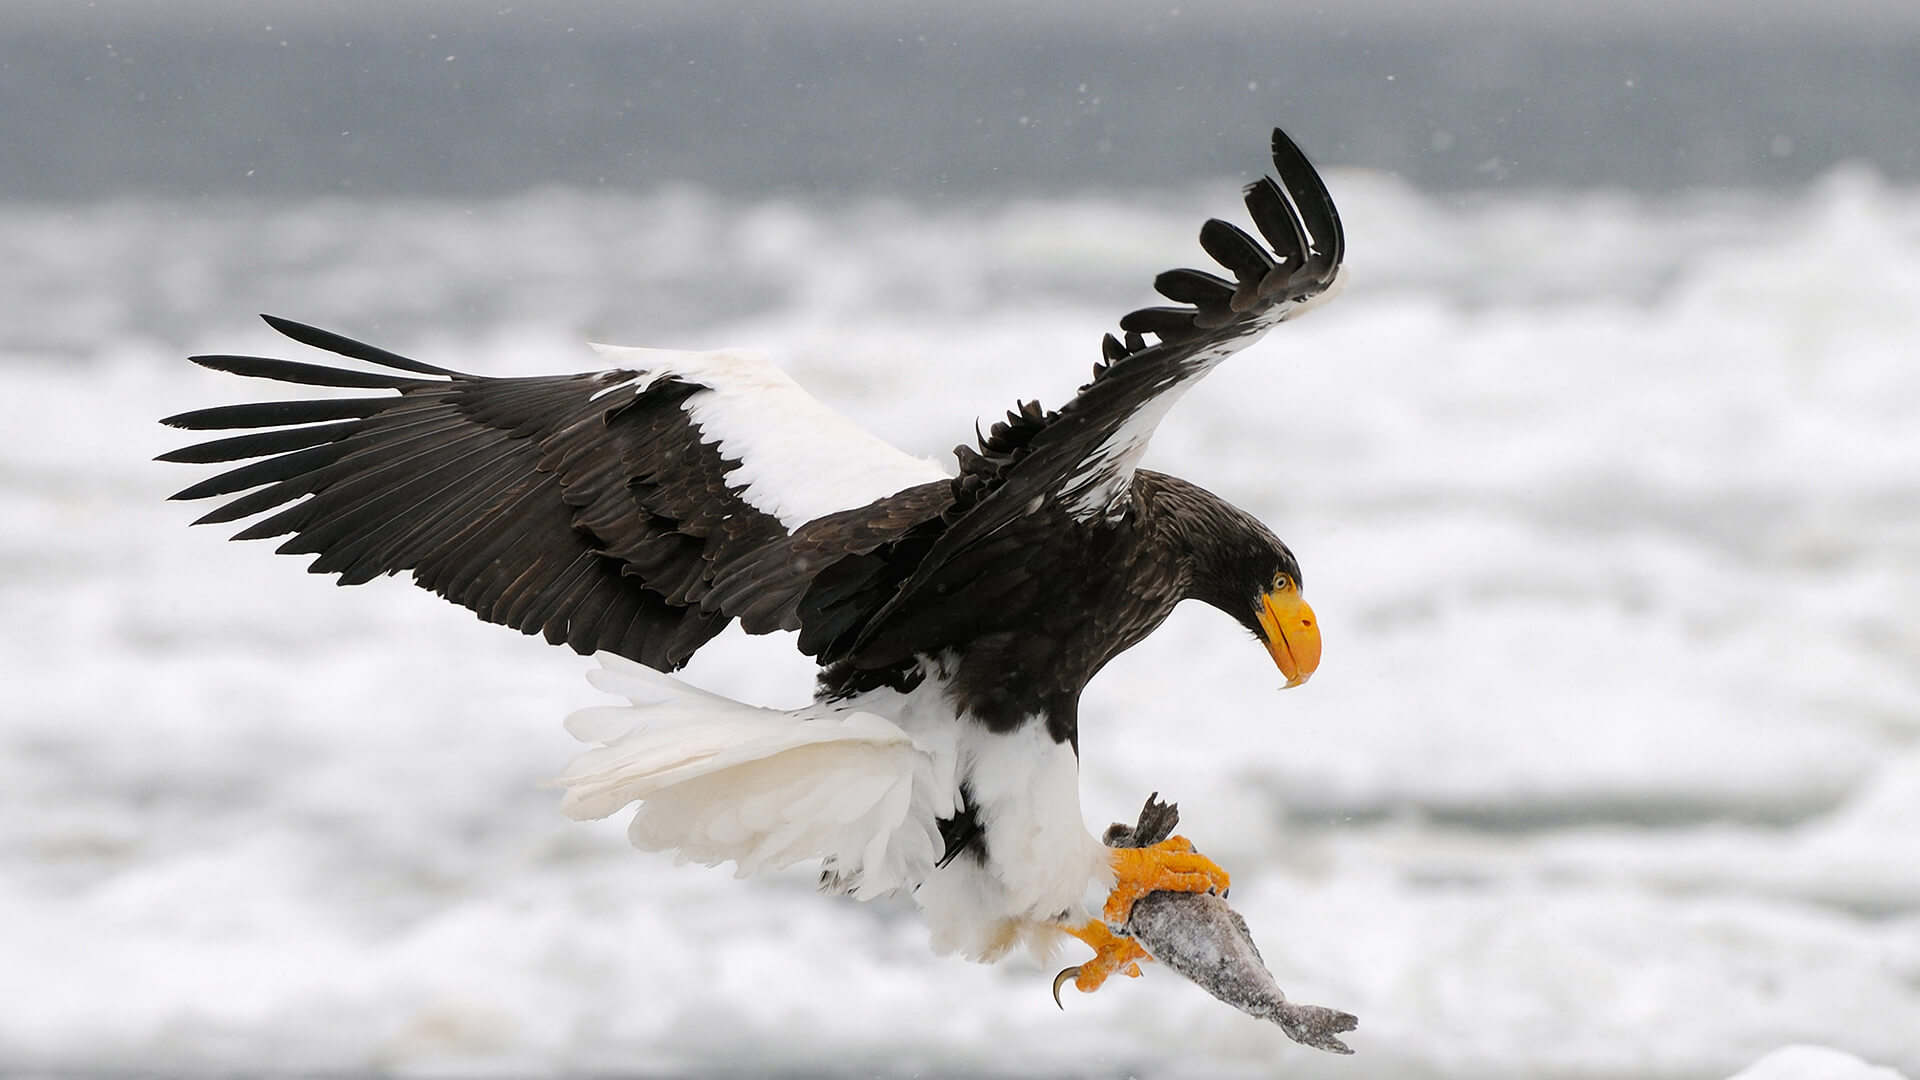 Seller's sea-eagle holding frozen fish in its talons as it flies over snow covered sea